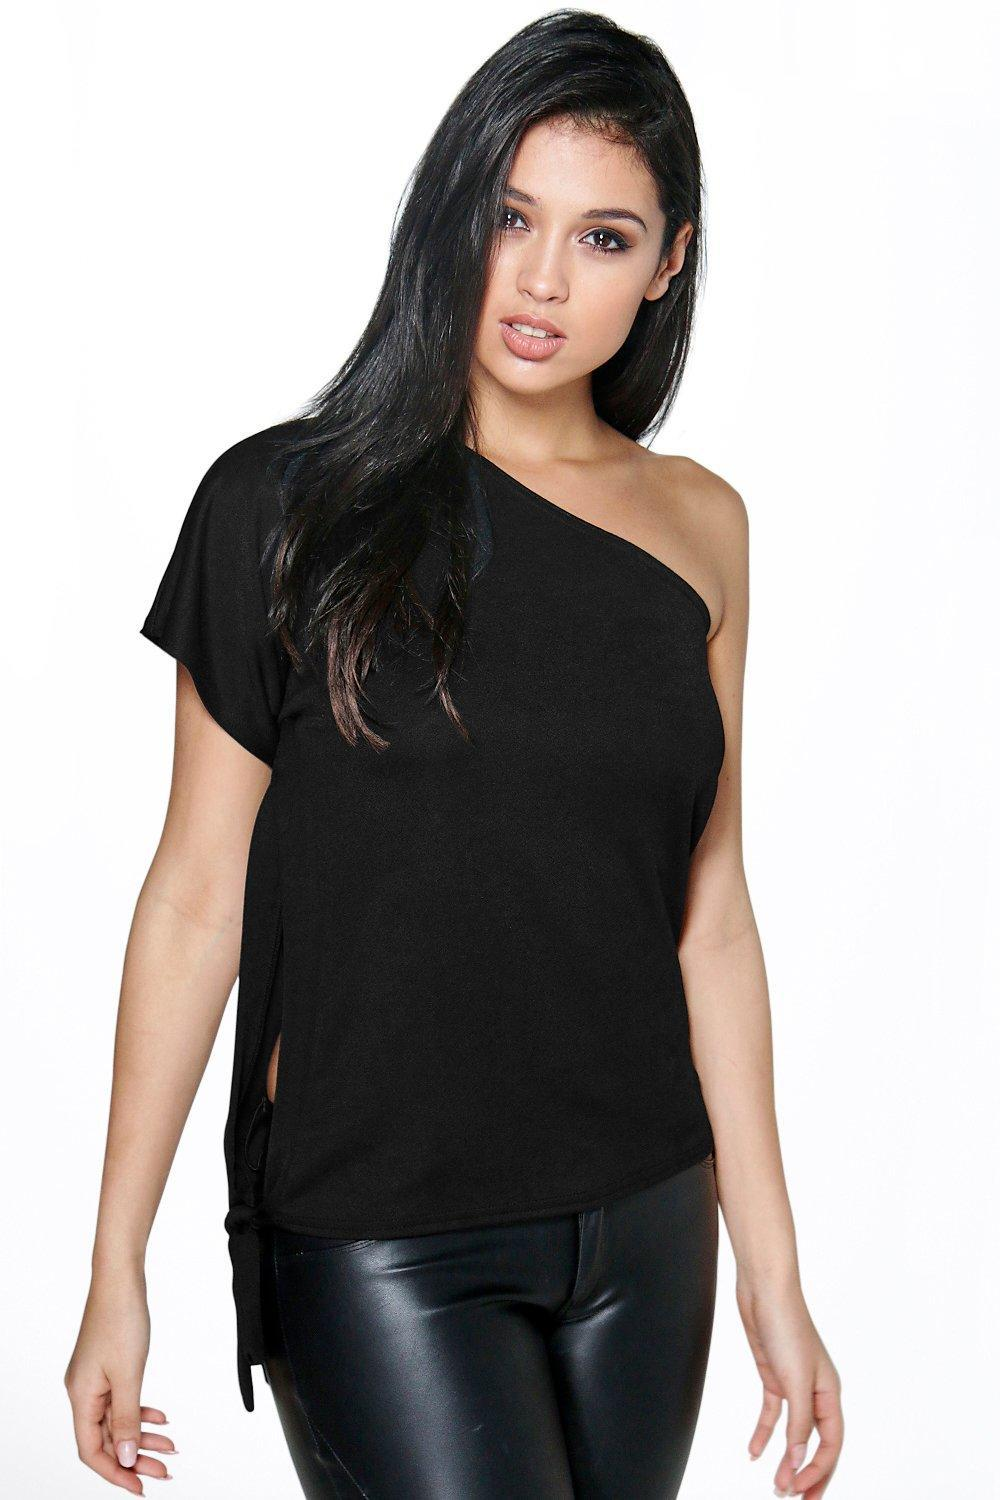 Open Side Tie Boxy Top Ivory - pattern: plain; neckline: asymmetric; predominant colour: black; occasions: evening; length: standard; style: top; fibres: polyester/polyamide - 100%; fit: straight cut; hip detail: subtle/flattering hip detail; sleeve length: short sleeve; sleeve style: standard; texture group: sheer fabrics/chiffon/organza etc.; pattern type: fabric; season: s/s 2016; wardrobe: event